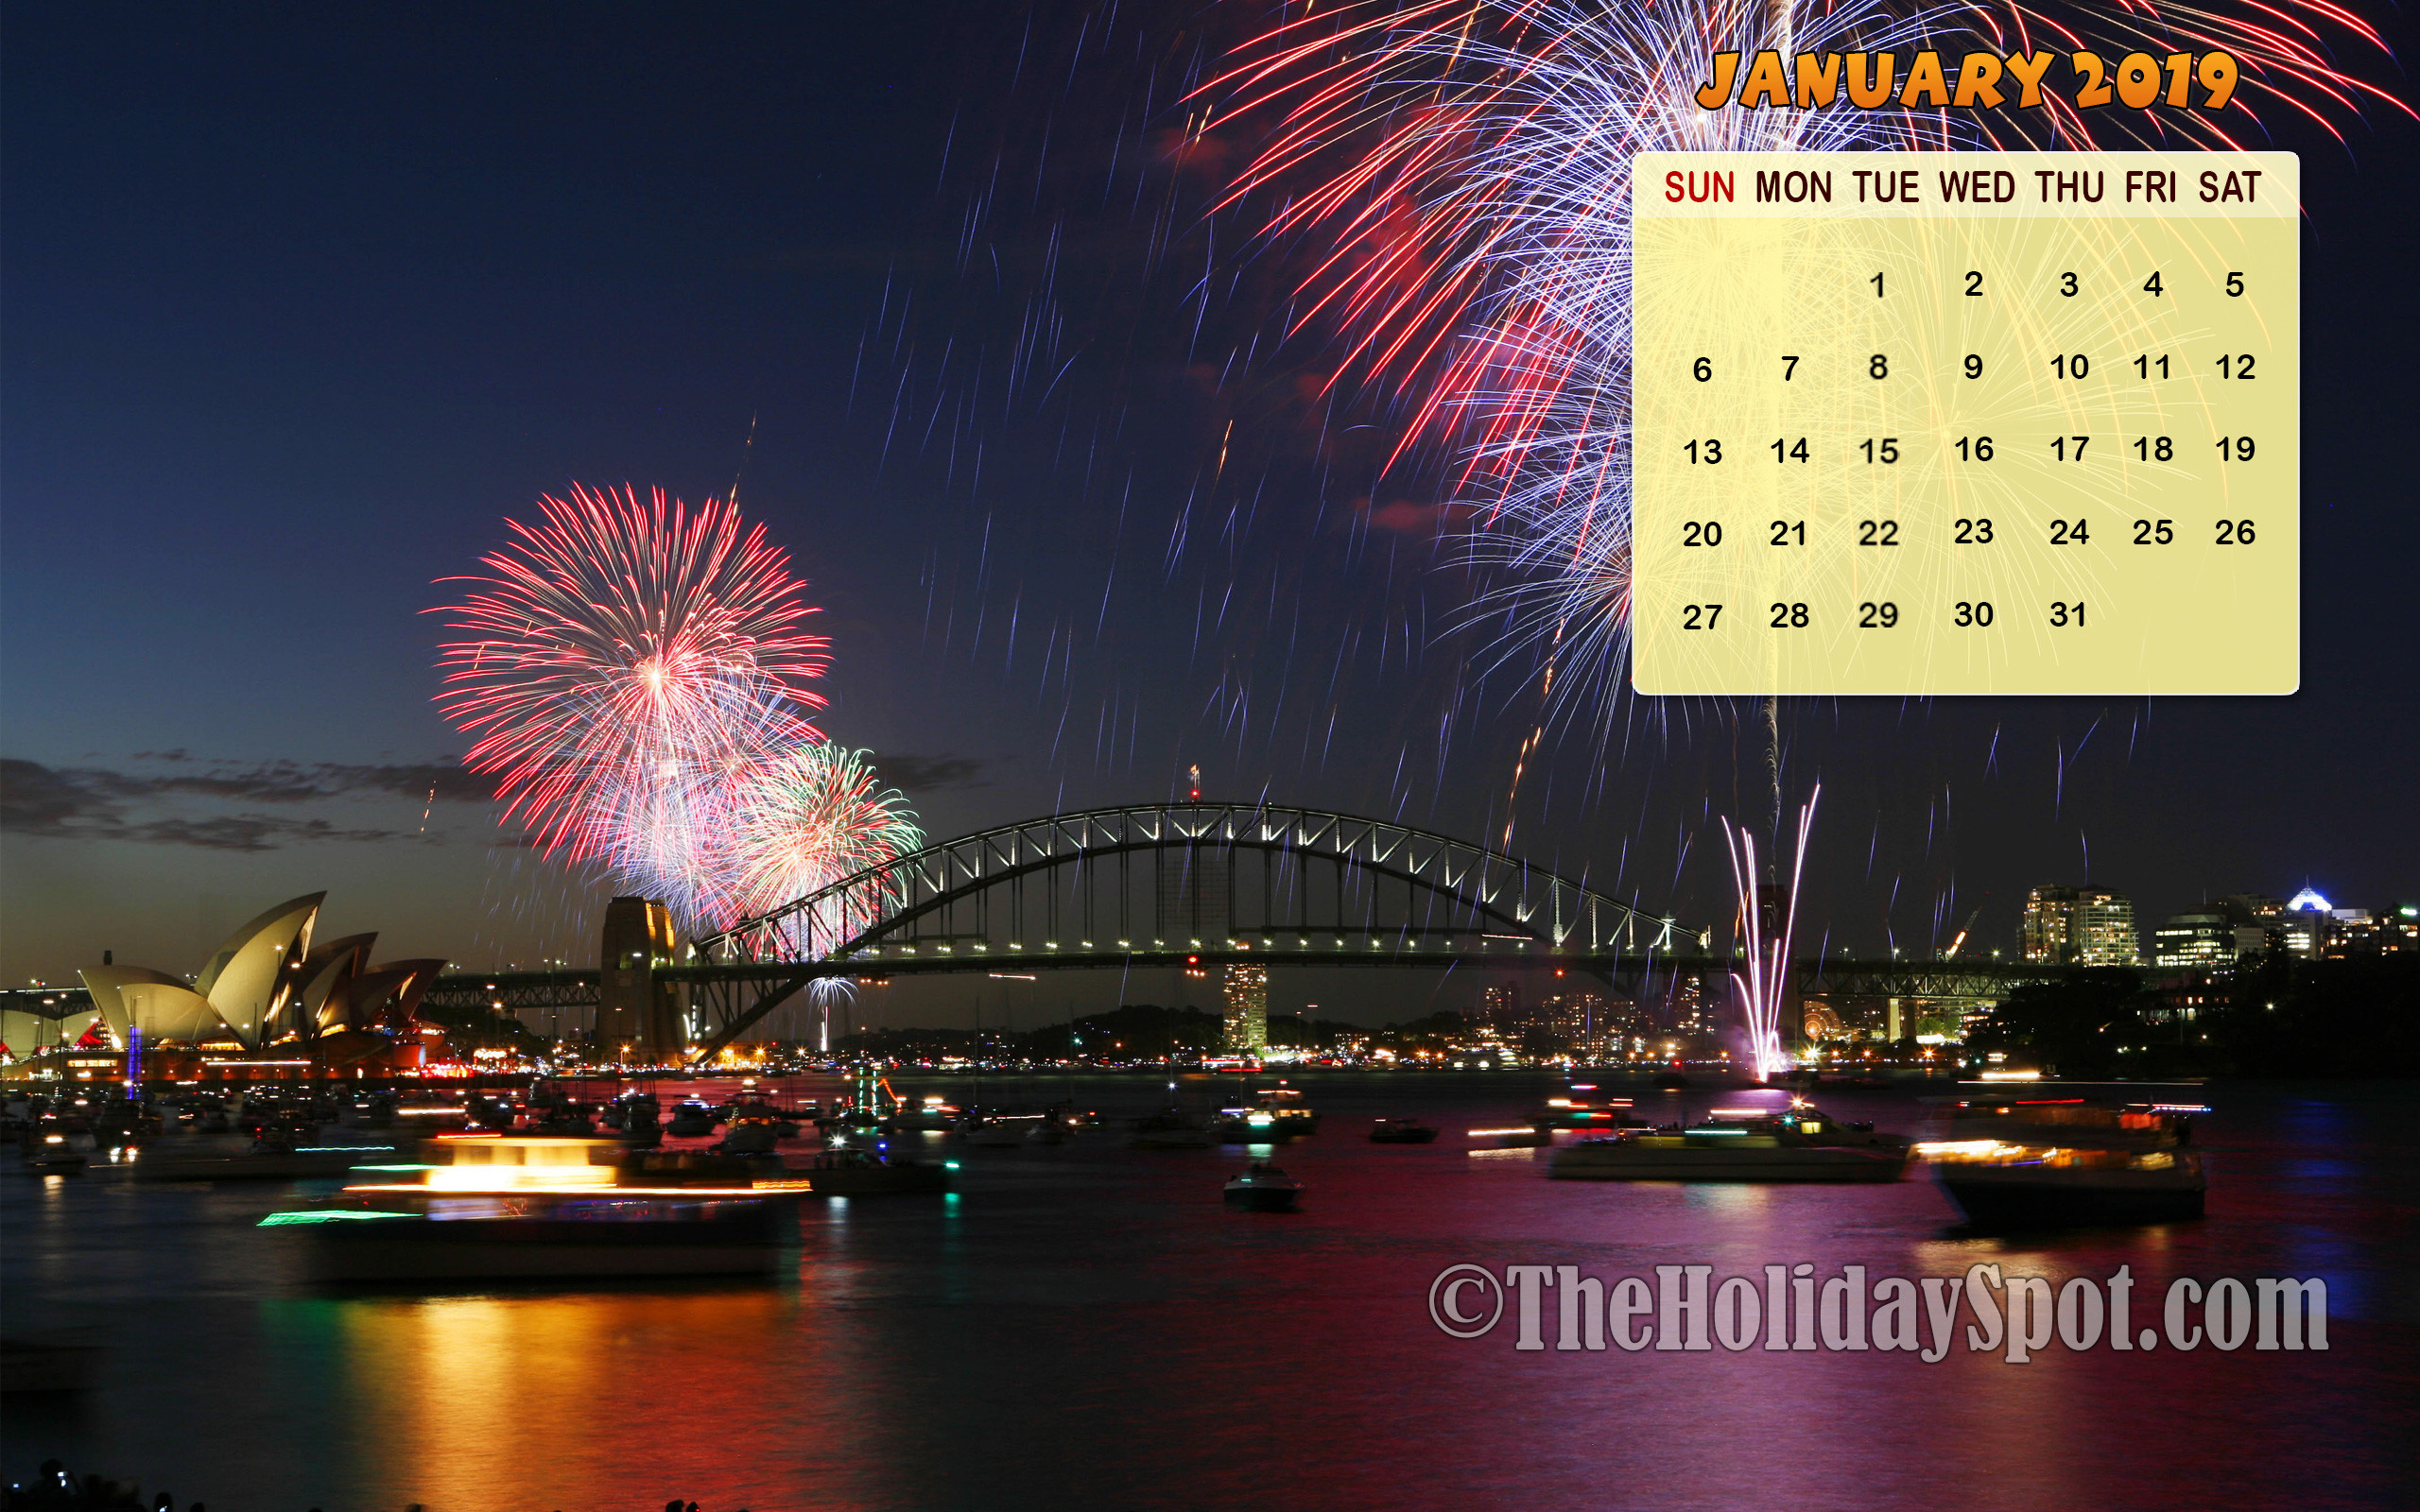 2560x1600 January 2019 Calendar Wallpaper with fireworks